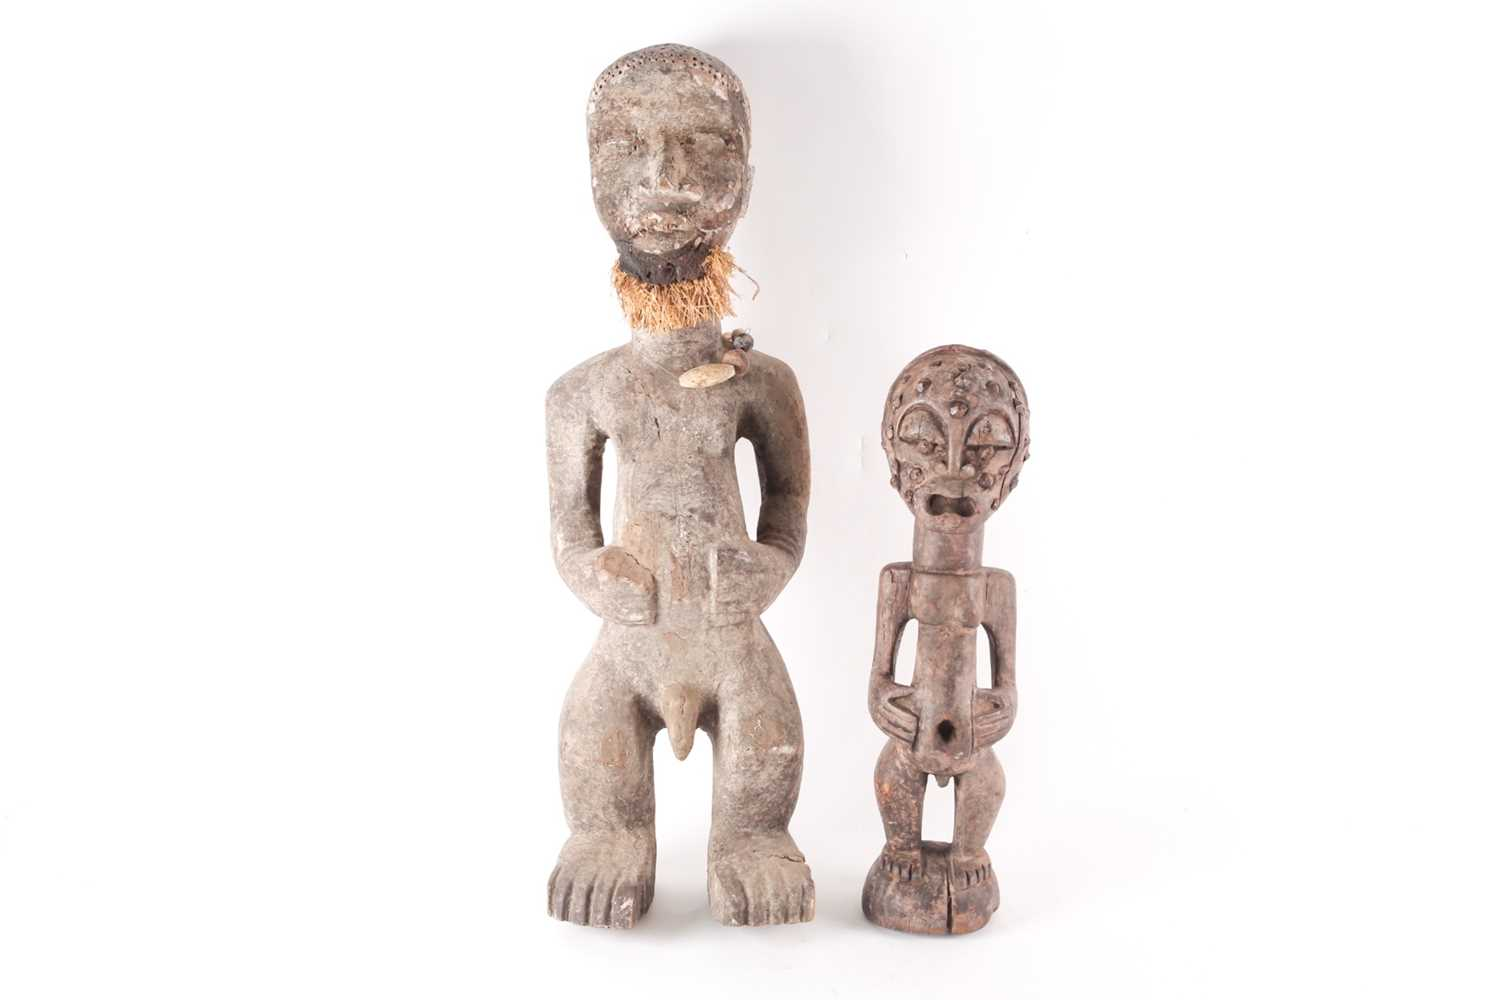 A Songye standing male reliquary power figure, Democratic Republic of Congo, the crown of the head